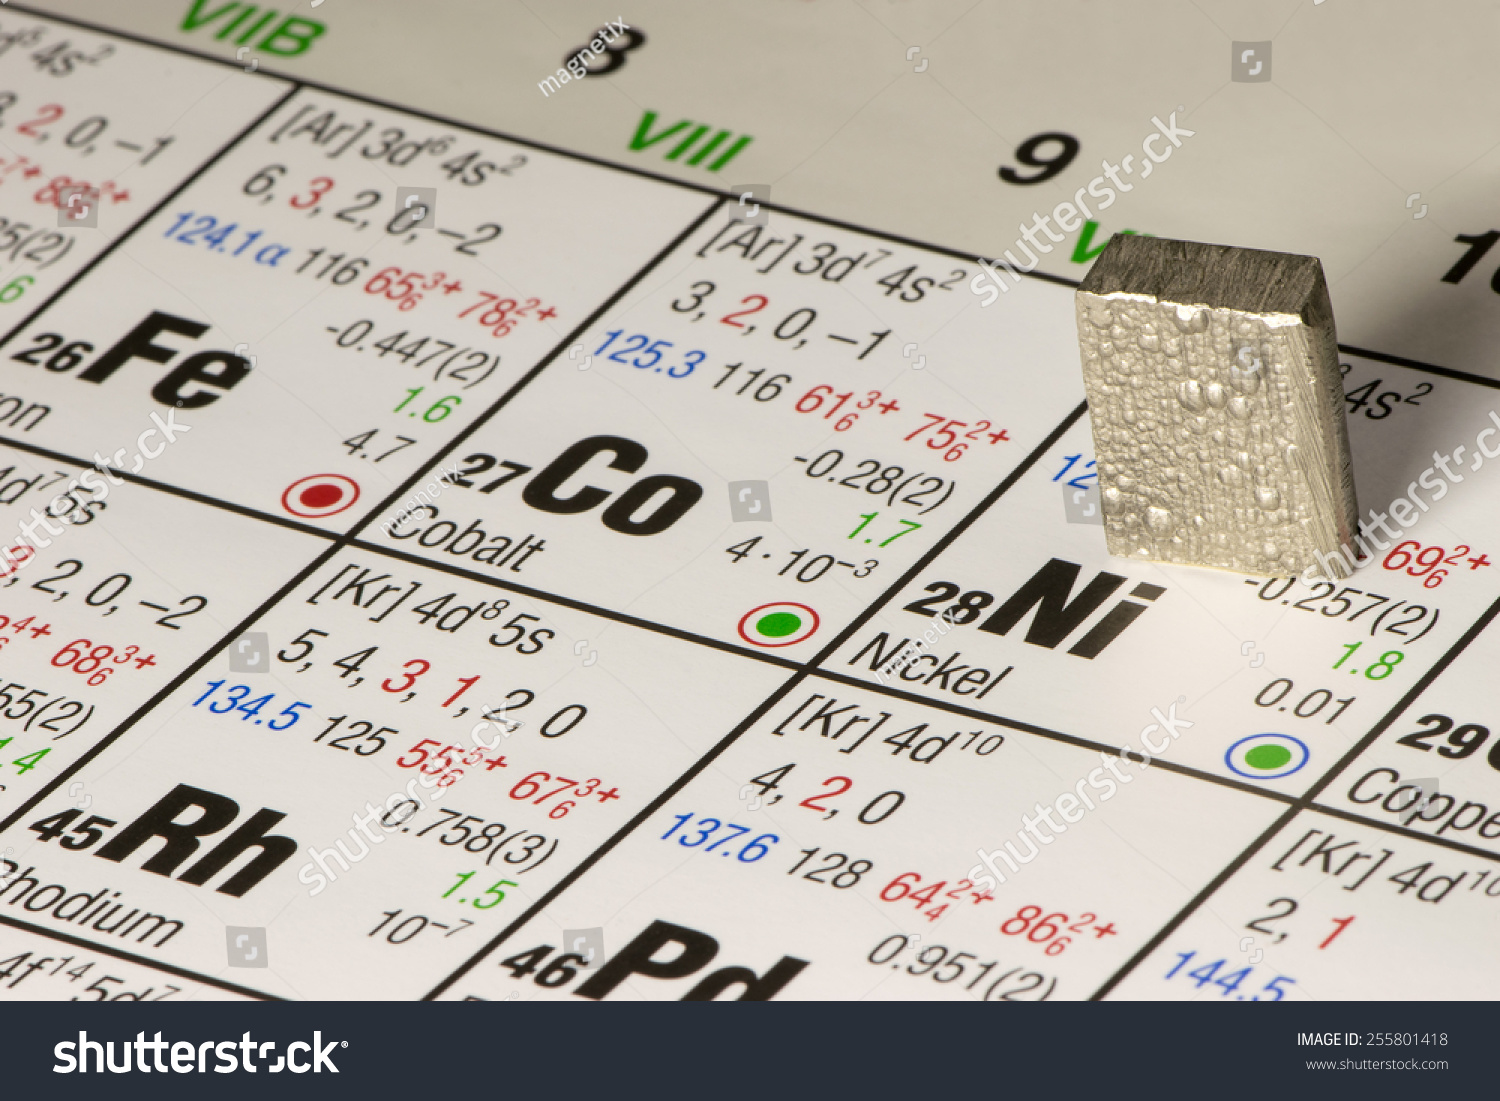 Nickel on periodic table image collections periodic table images nickel on periodic table gallery periodic table images piece nickel on periodic table elements stock photo gamestrikefo Gallery